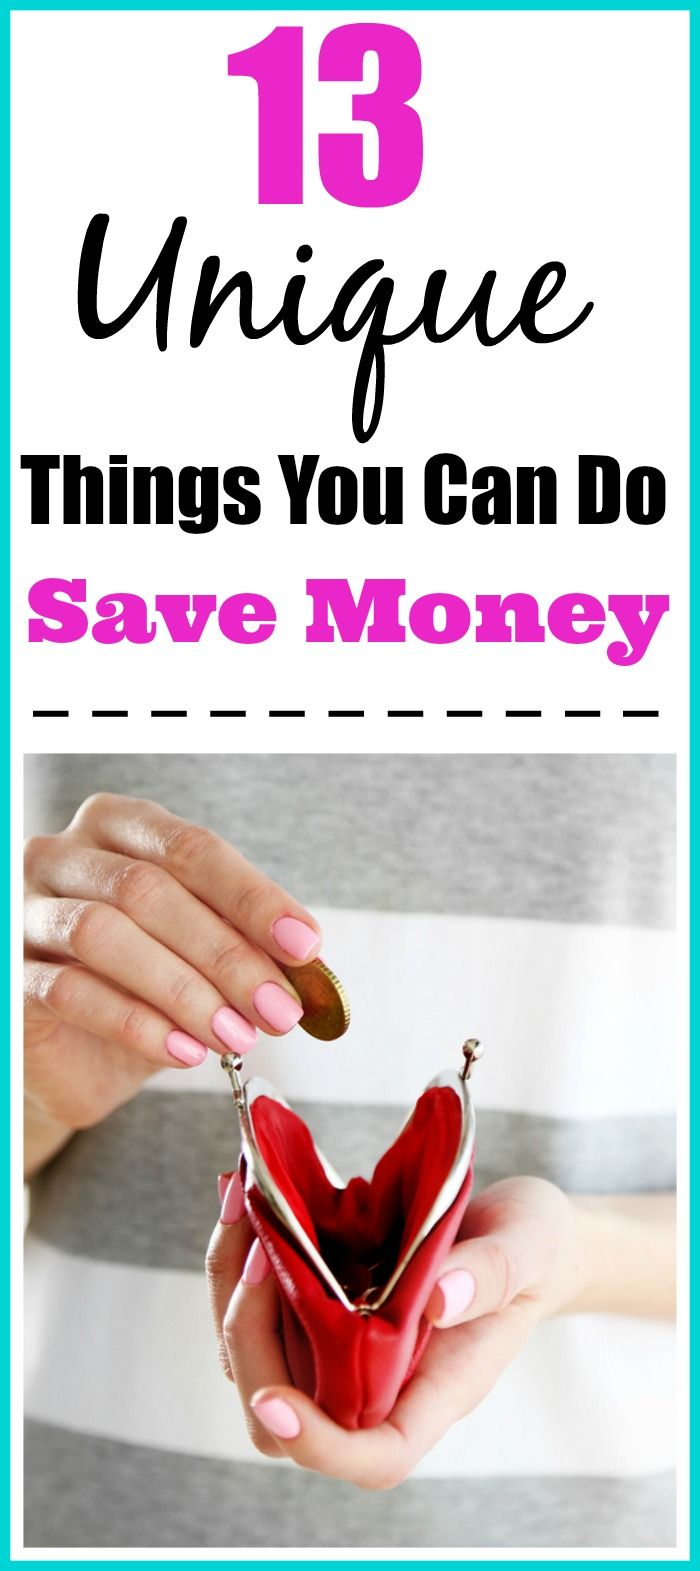 How can I save money while I'm studying?